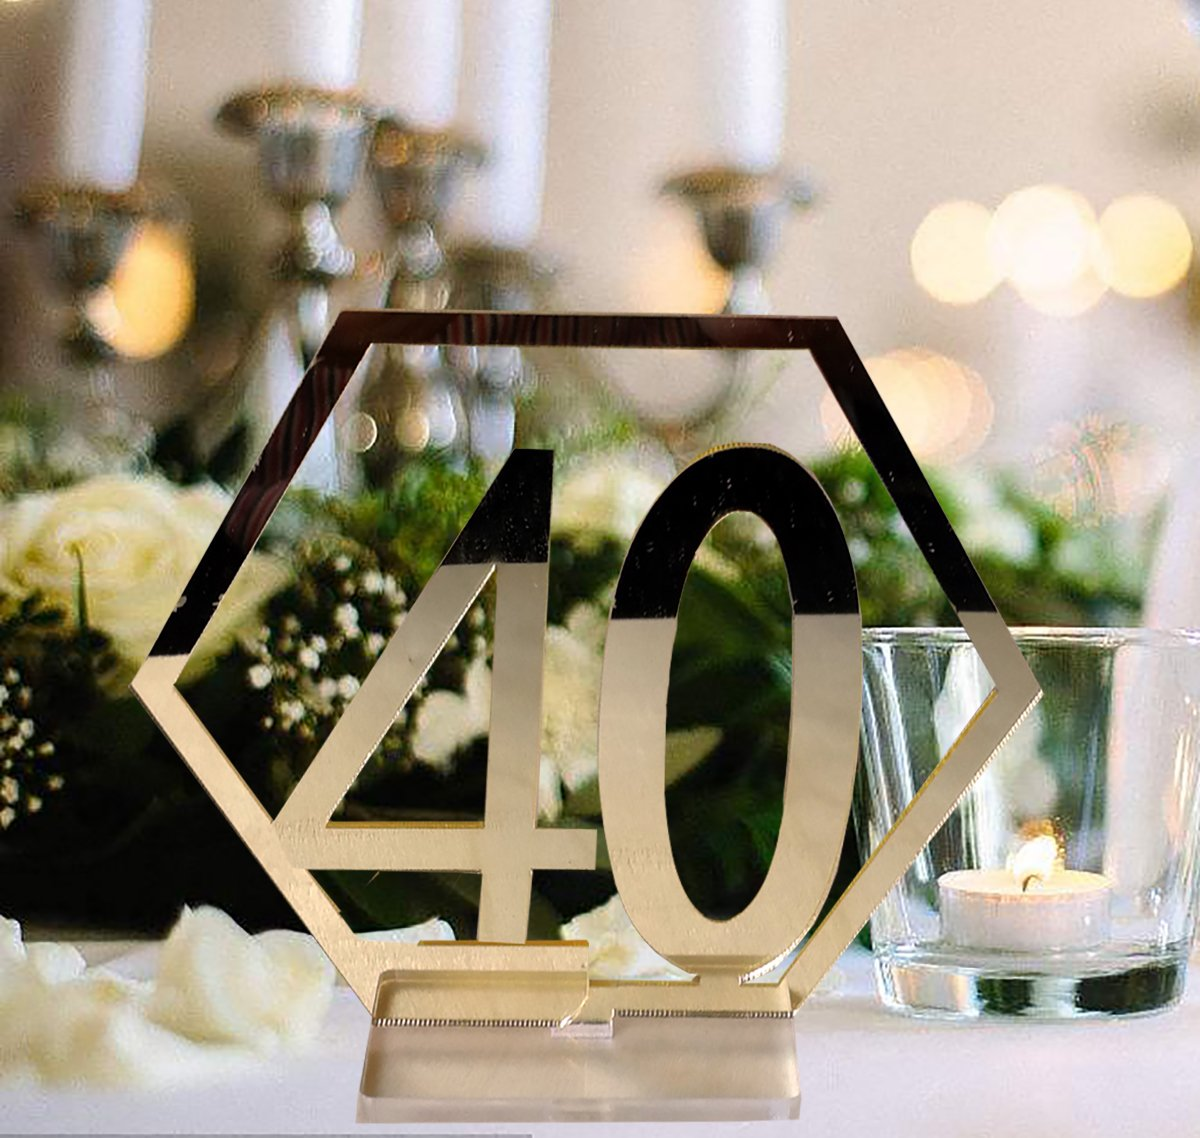 Fashionclubs Table Numbers, 1-40 Wedding Acrylic Table Numbers with Holder Base Party Card Table Holder,Hexagon Shape,Perfect for Wedding Reception and Decoration,Gold by Fashionclubs